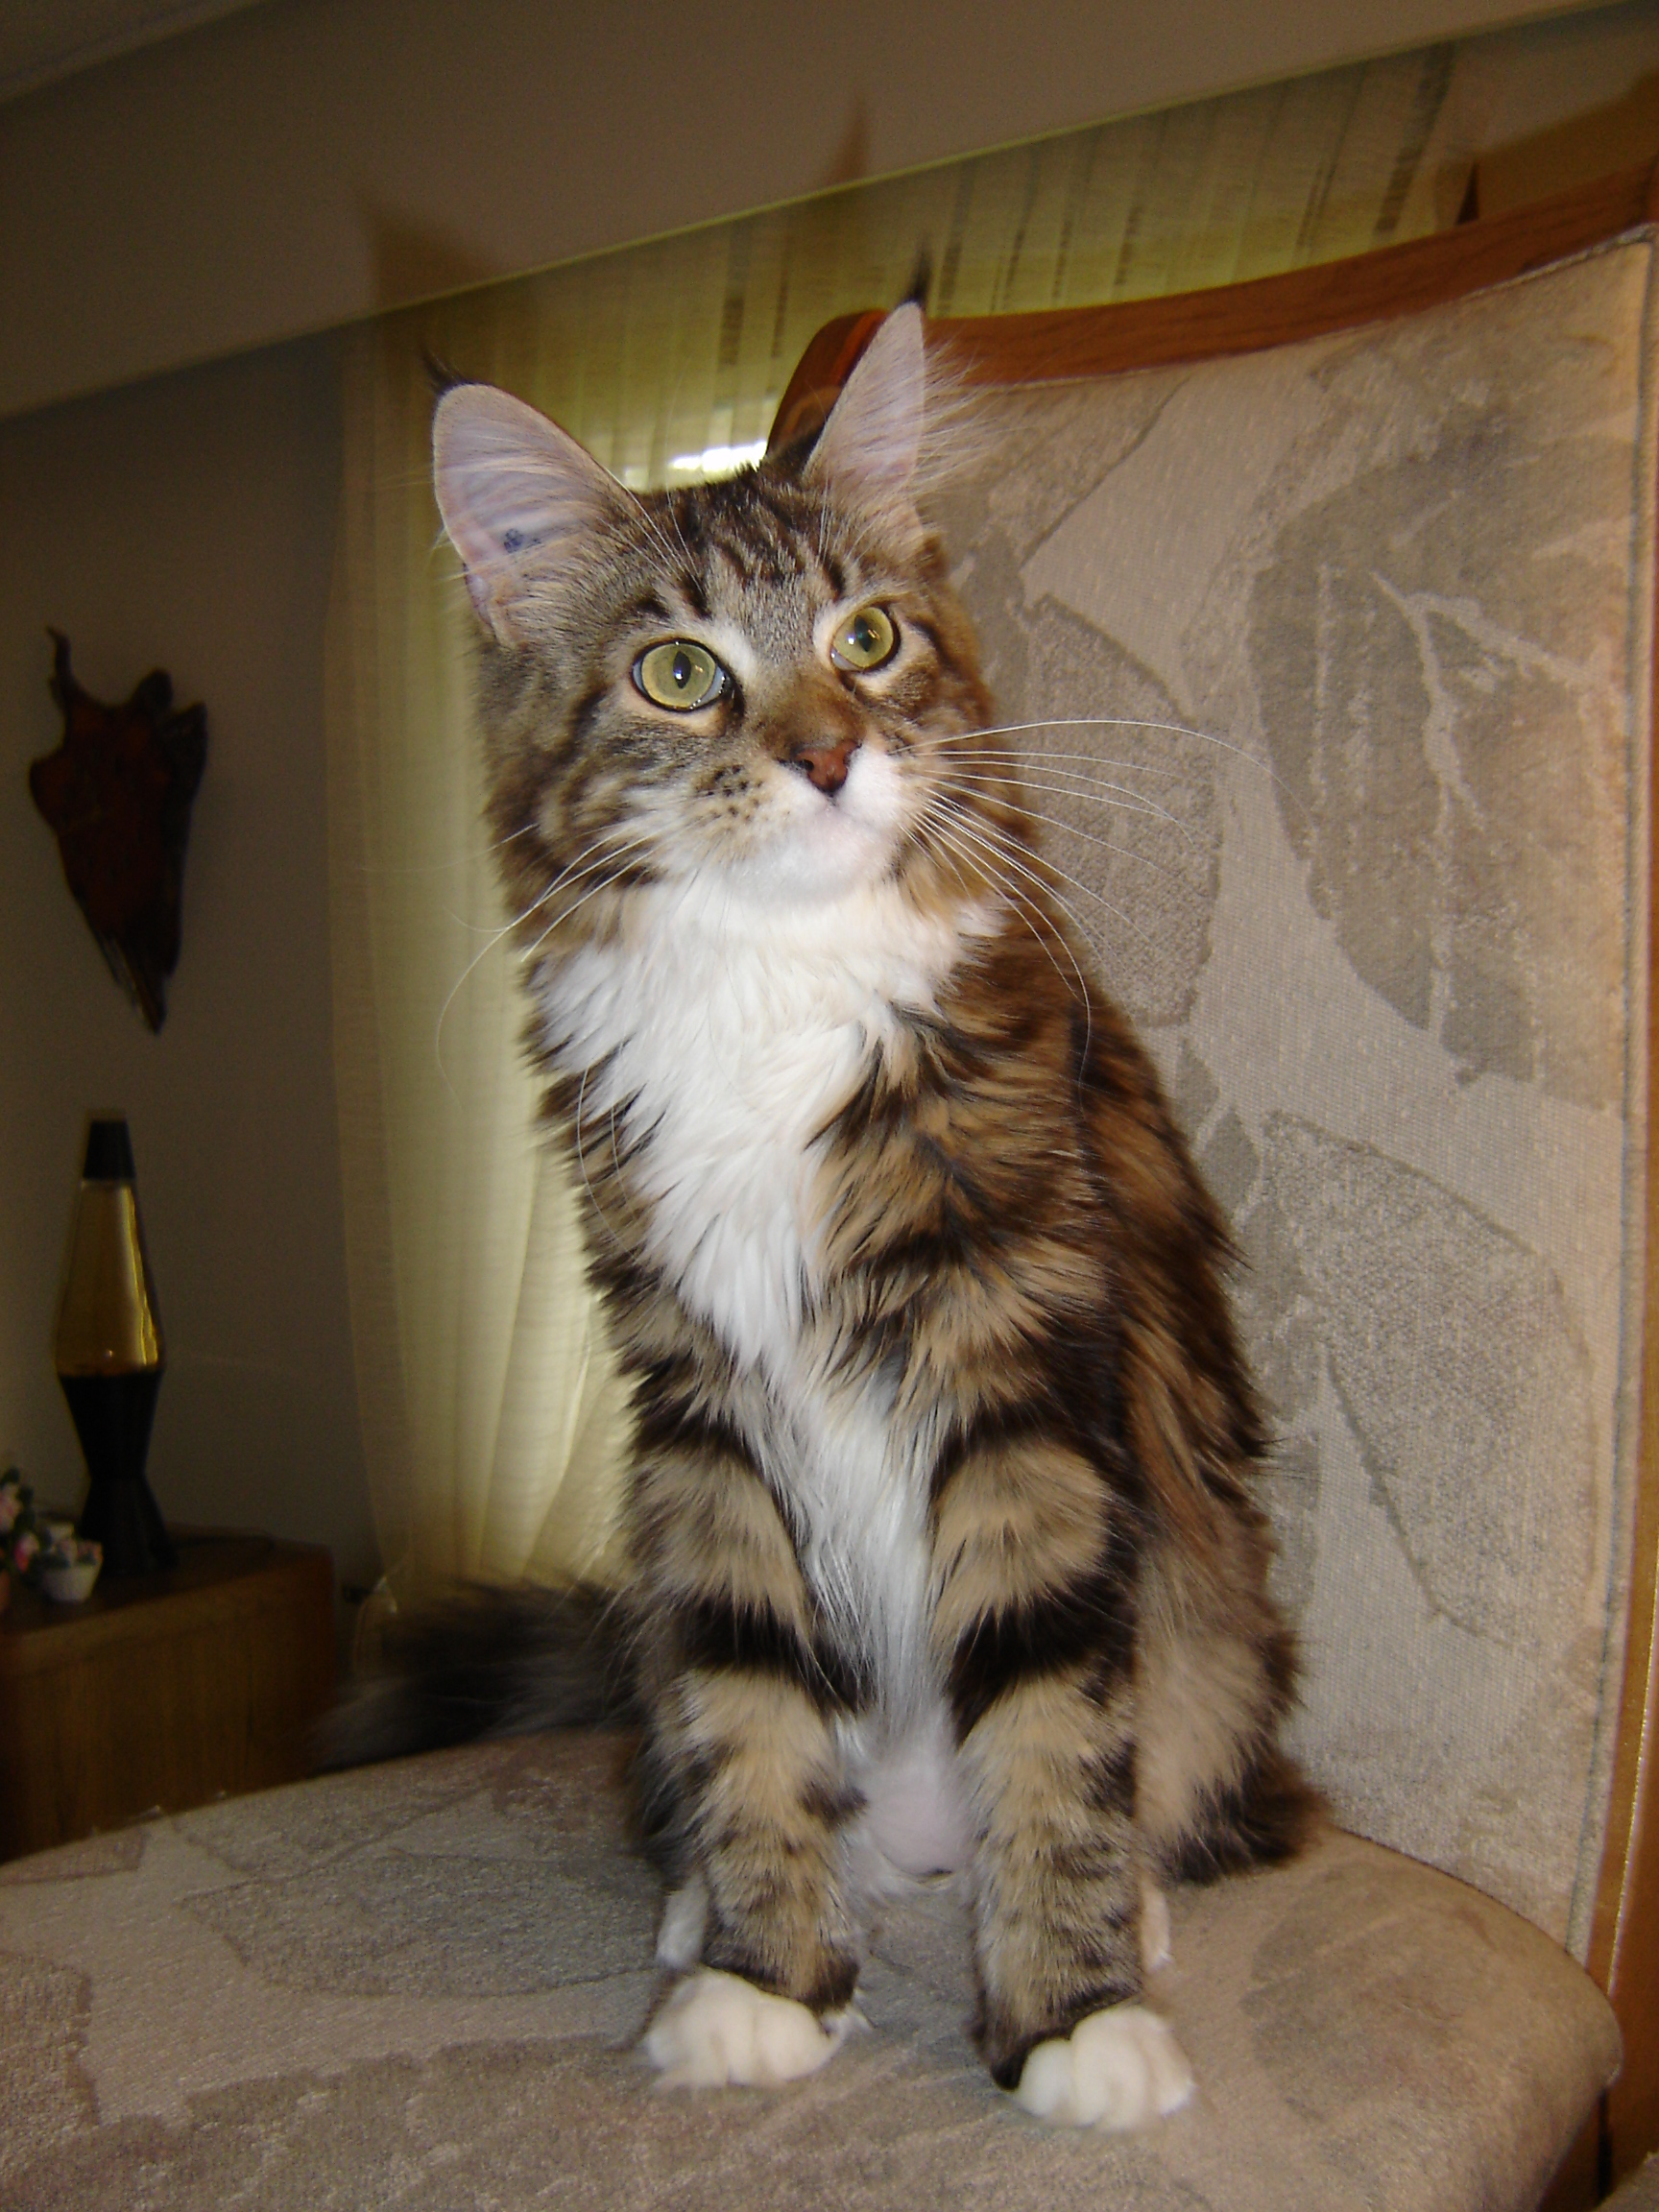 File:Maine coon.JPG - Wikipedia Tabby Maine Coon Kitten